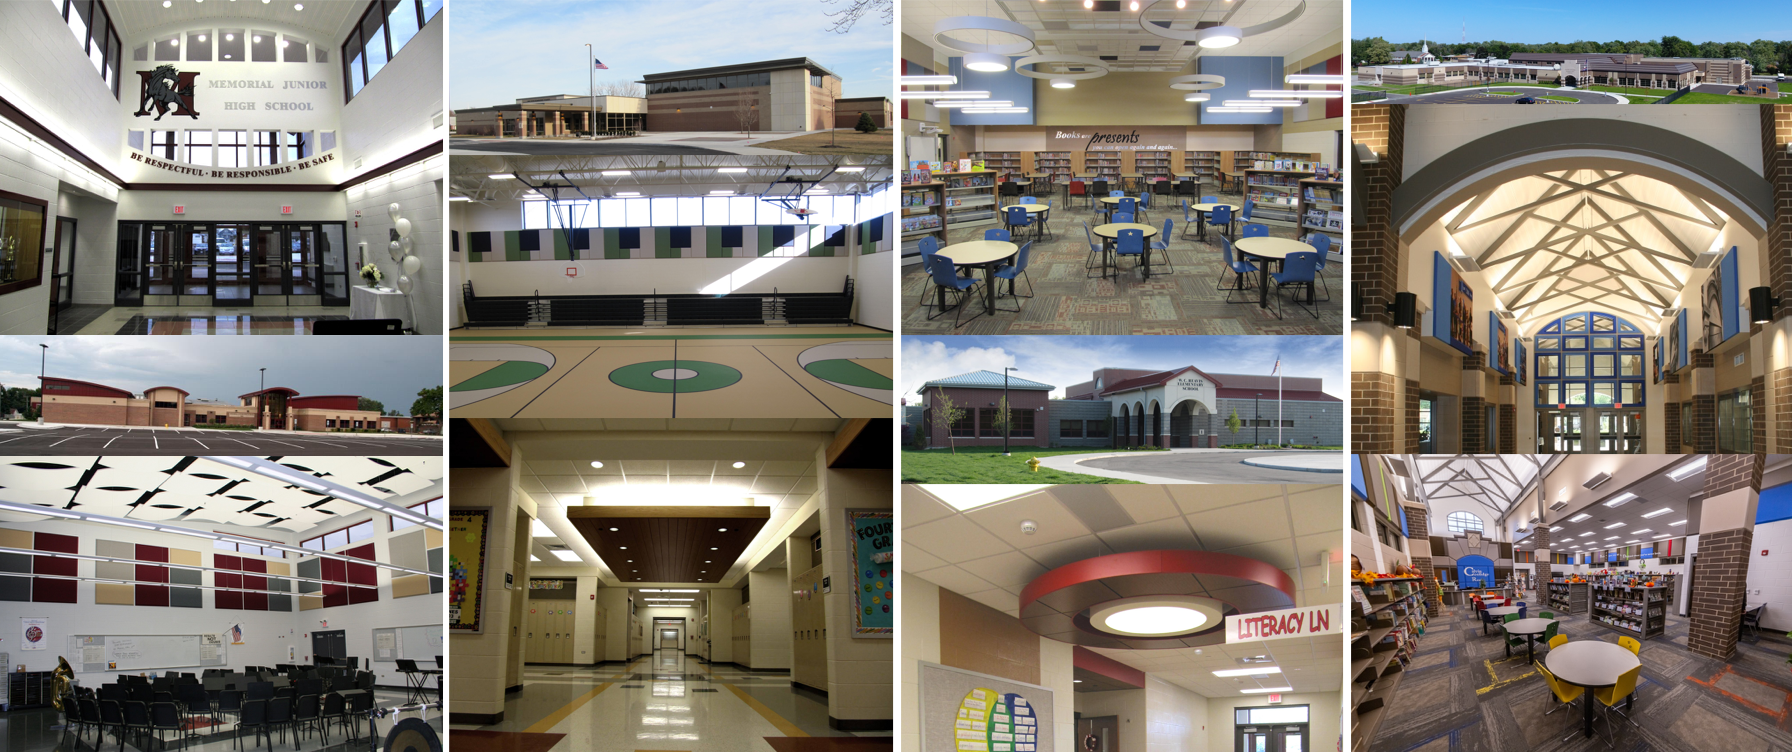 In addition to schools that are paying for AP tests and expanding school summer programs, Lansing School District 158's Equity in Facilities initiative is closing the achievement gap through school construction projects.